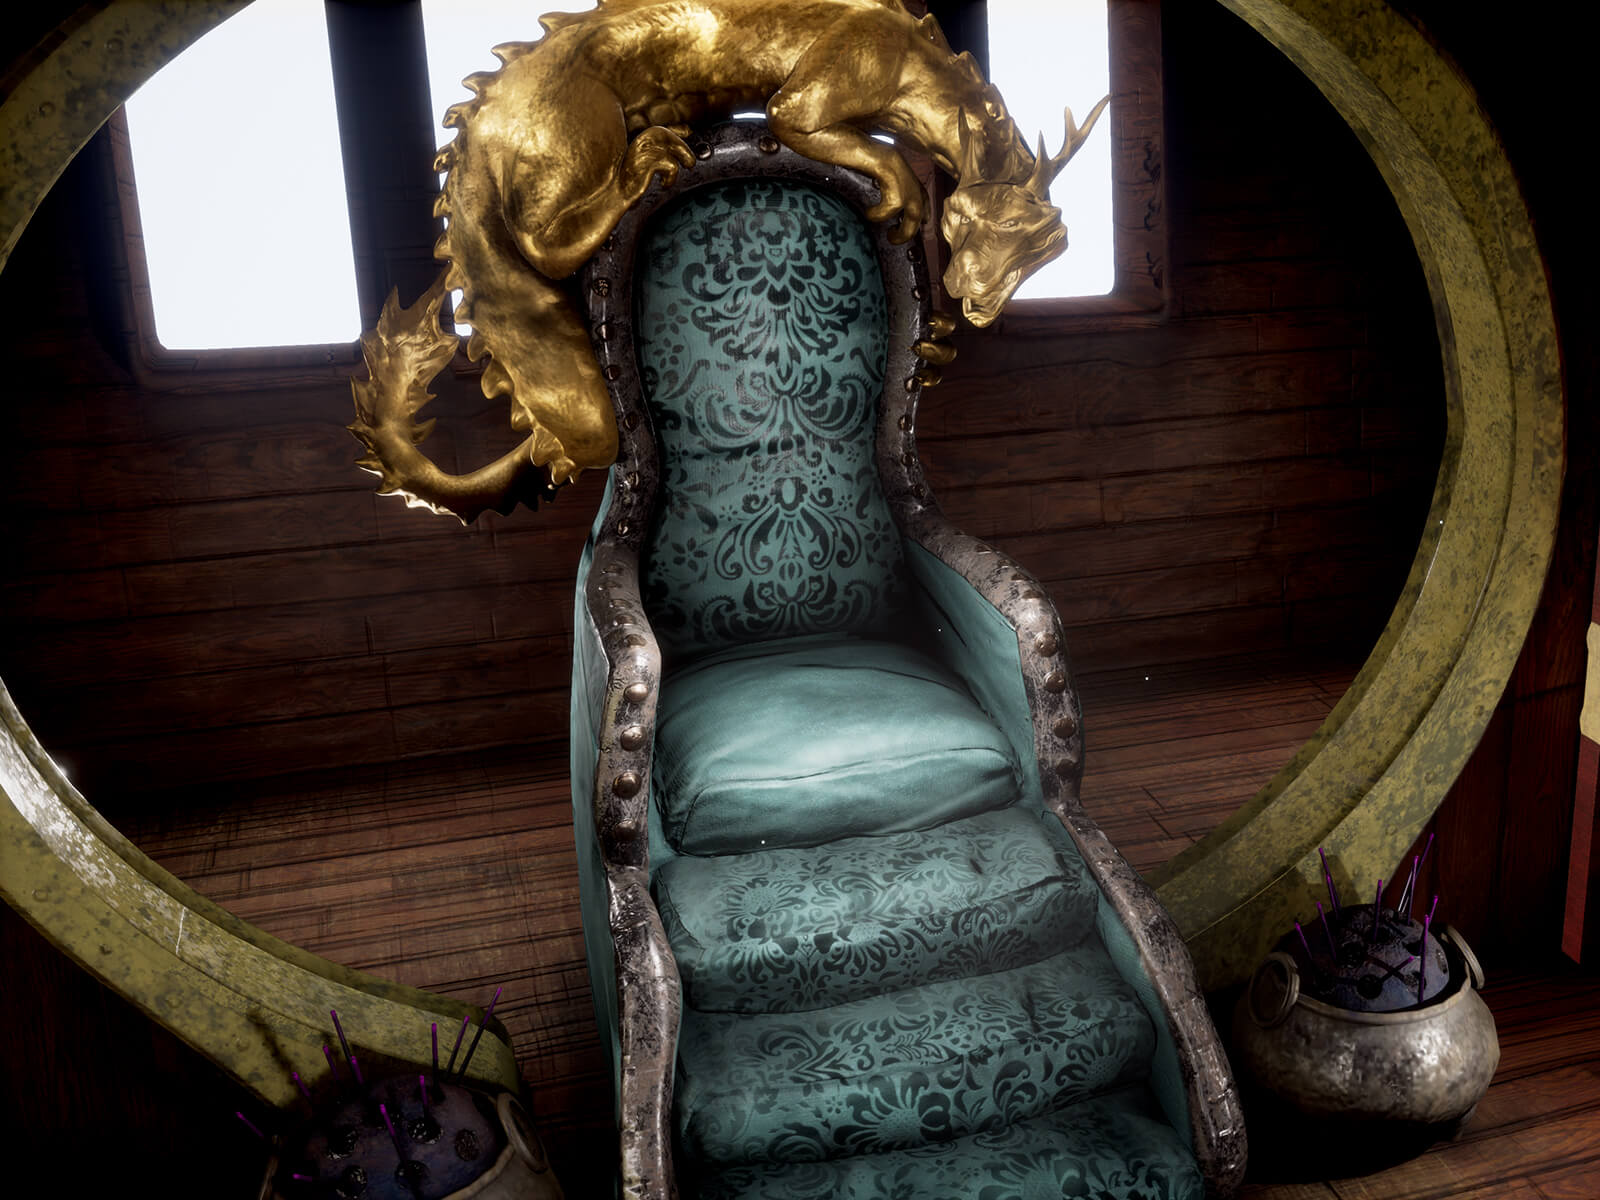 An upholstered throne with a dragon sculpture perched on top